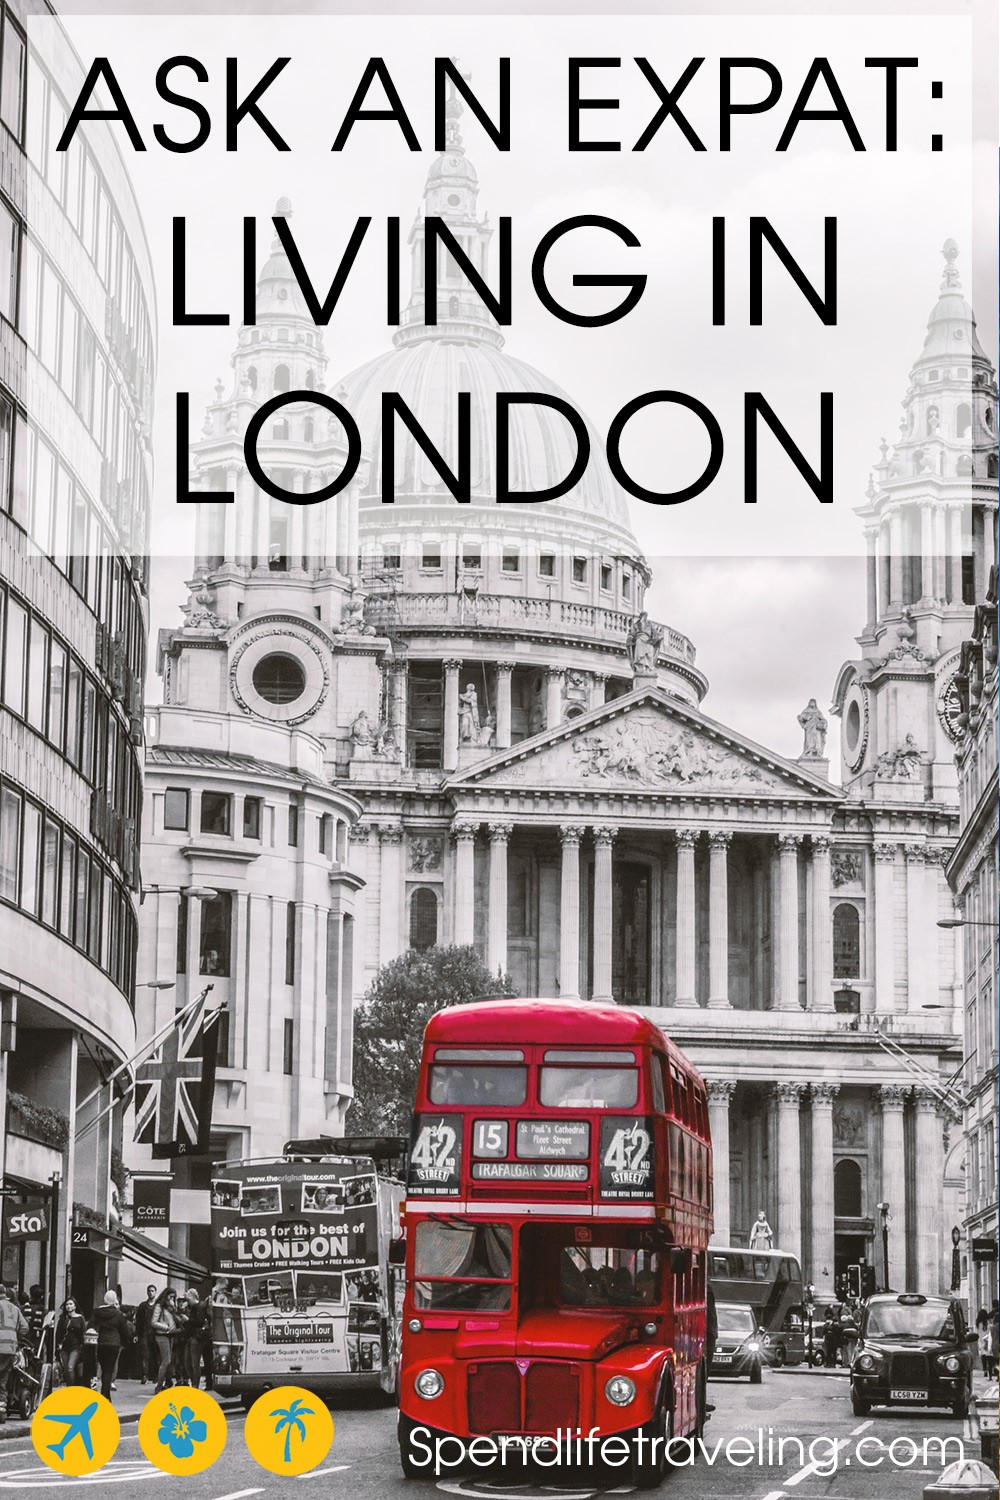 Expat life in London: Interview about moving to and living in London. #expat #london #moveabroad